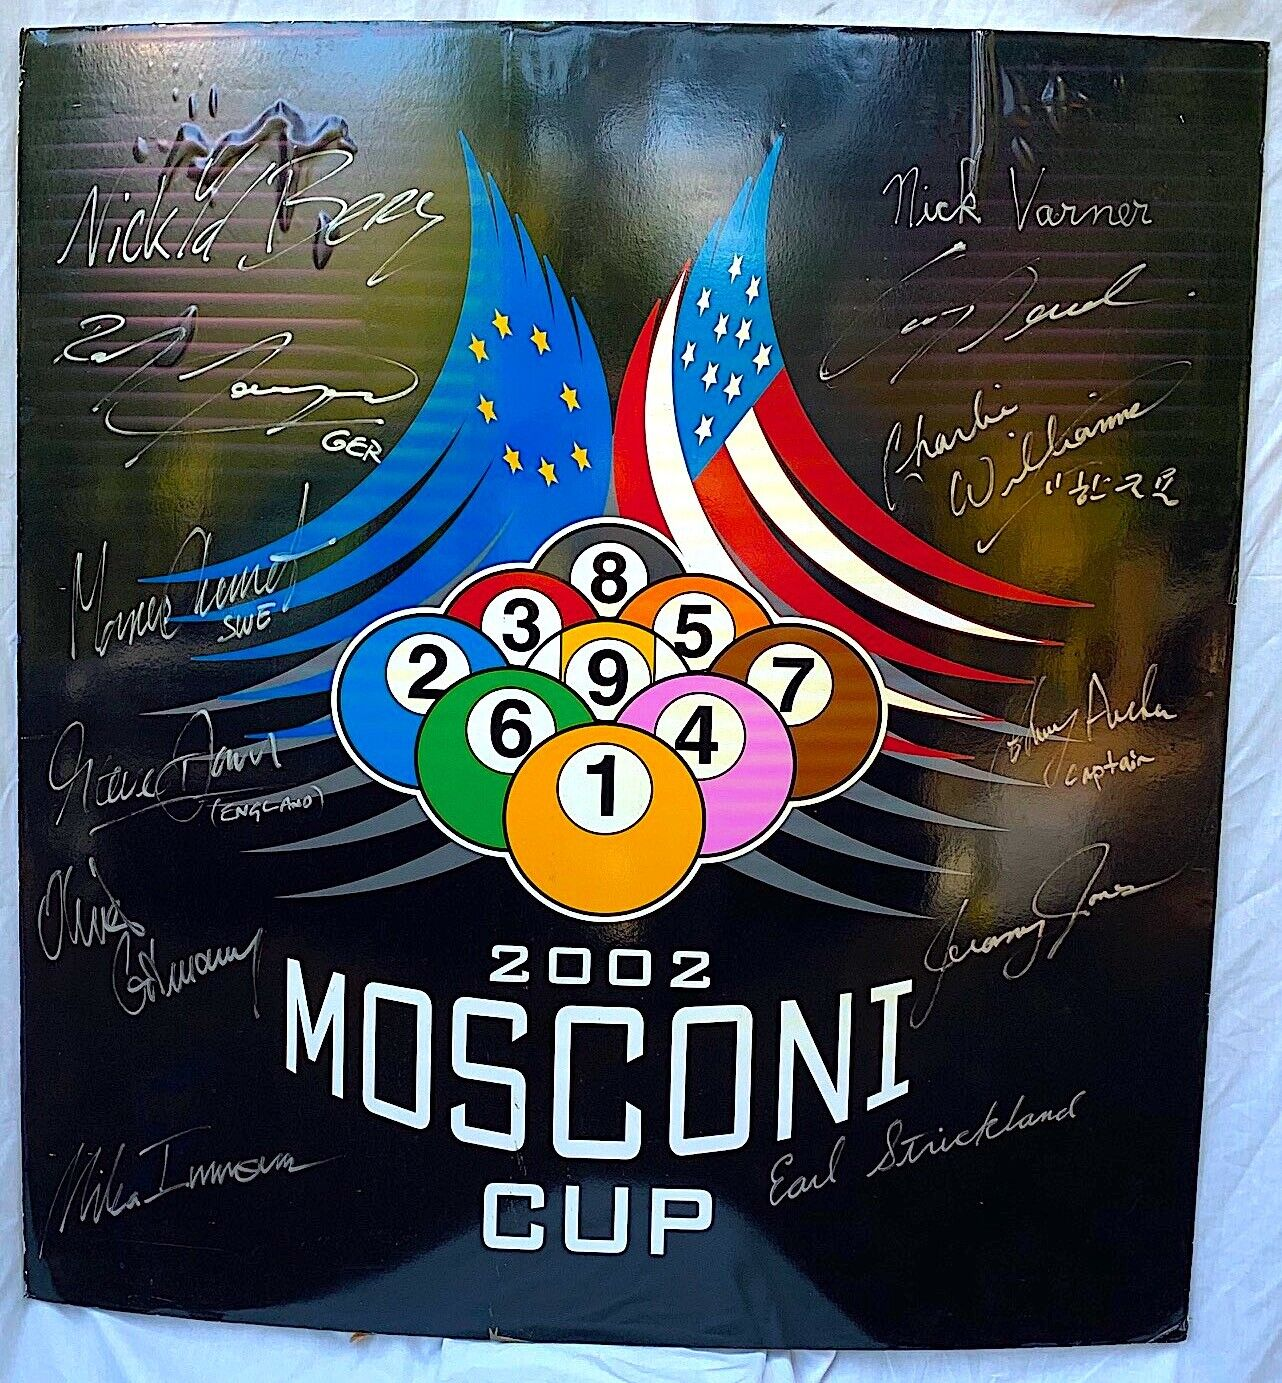 9th Ladbrookes.com Mosconi Cup 2002 Signed Poster and Programme Pool Premier Team